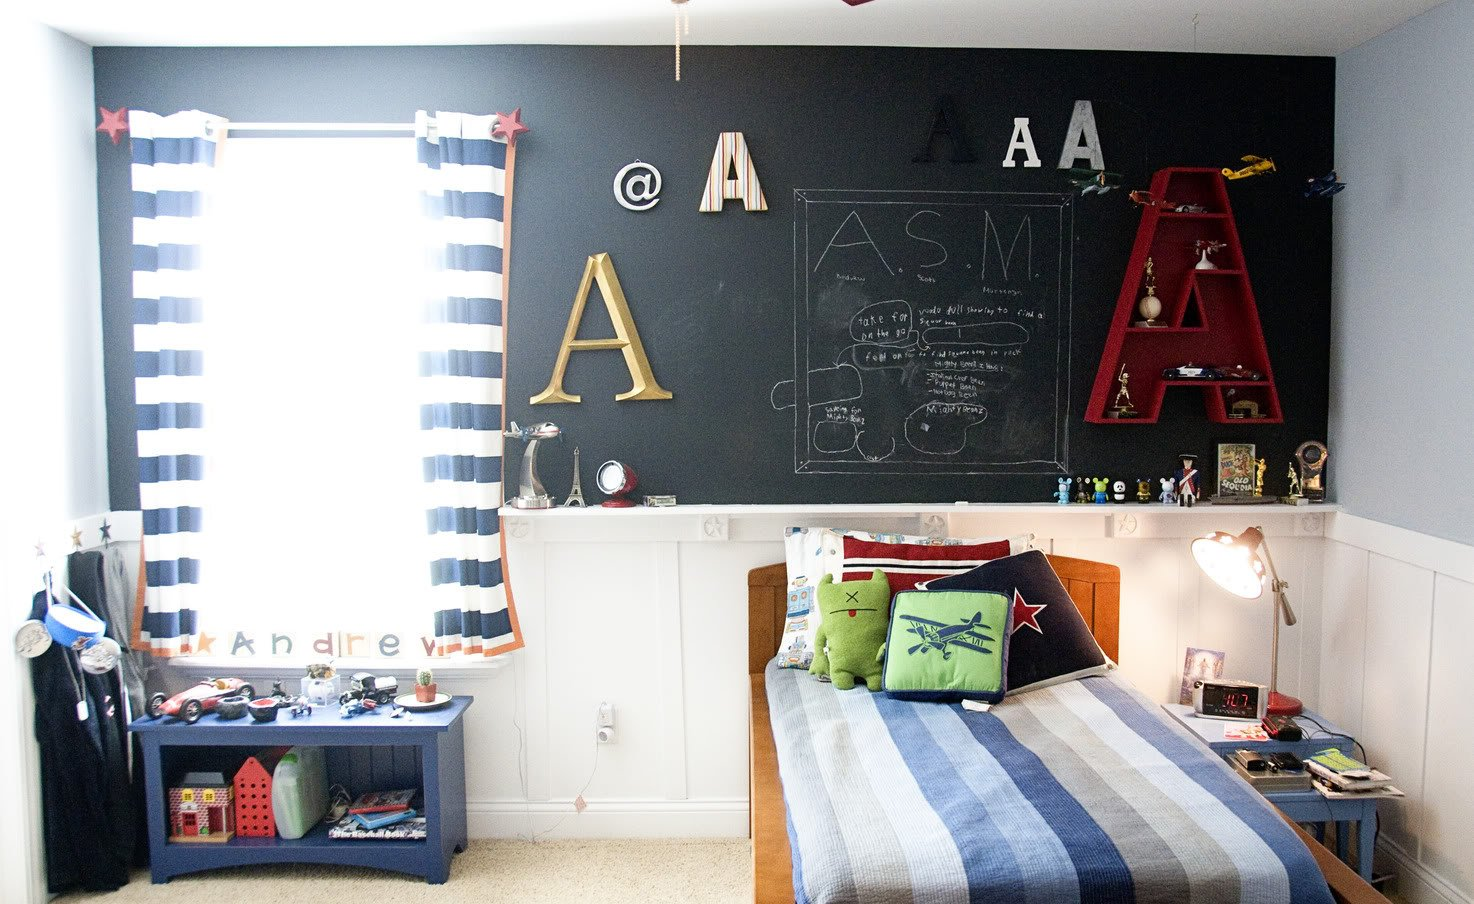 Cool bedroom ideas 12 boy rooms today 39 s creative life for Room decor for 10 year old boy